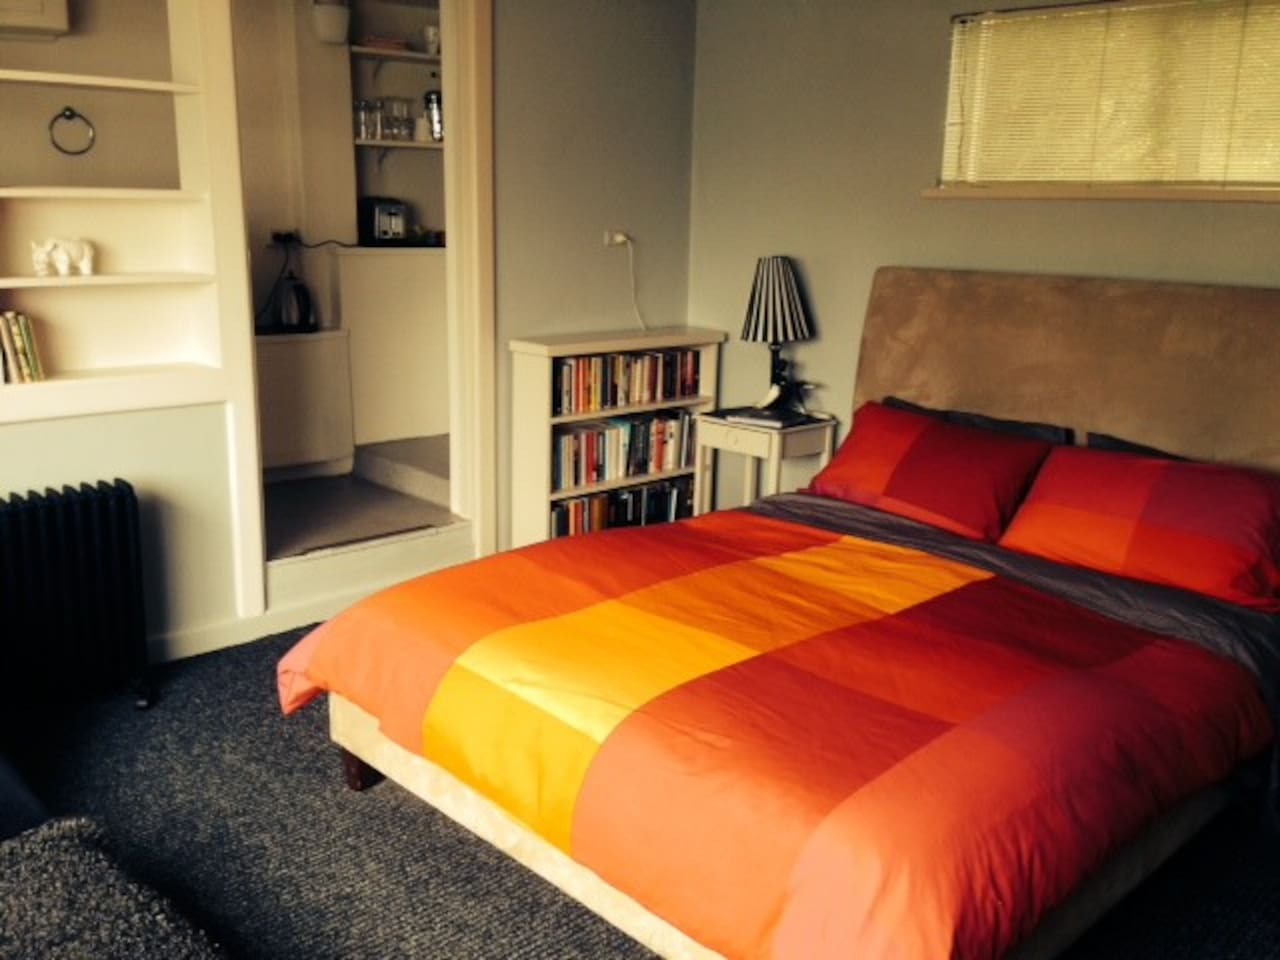 The Cosy Bedsit - queen sized bed